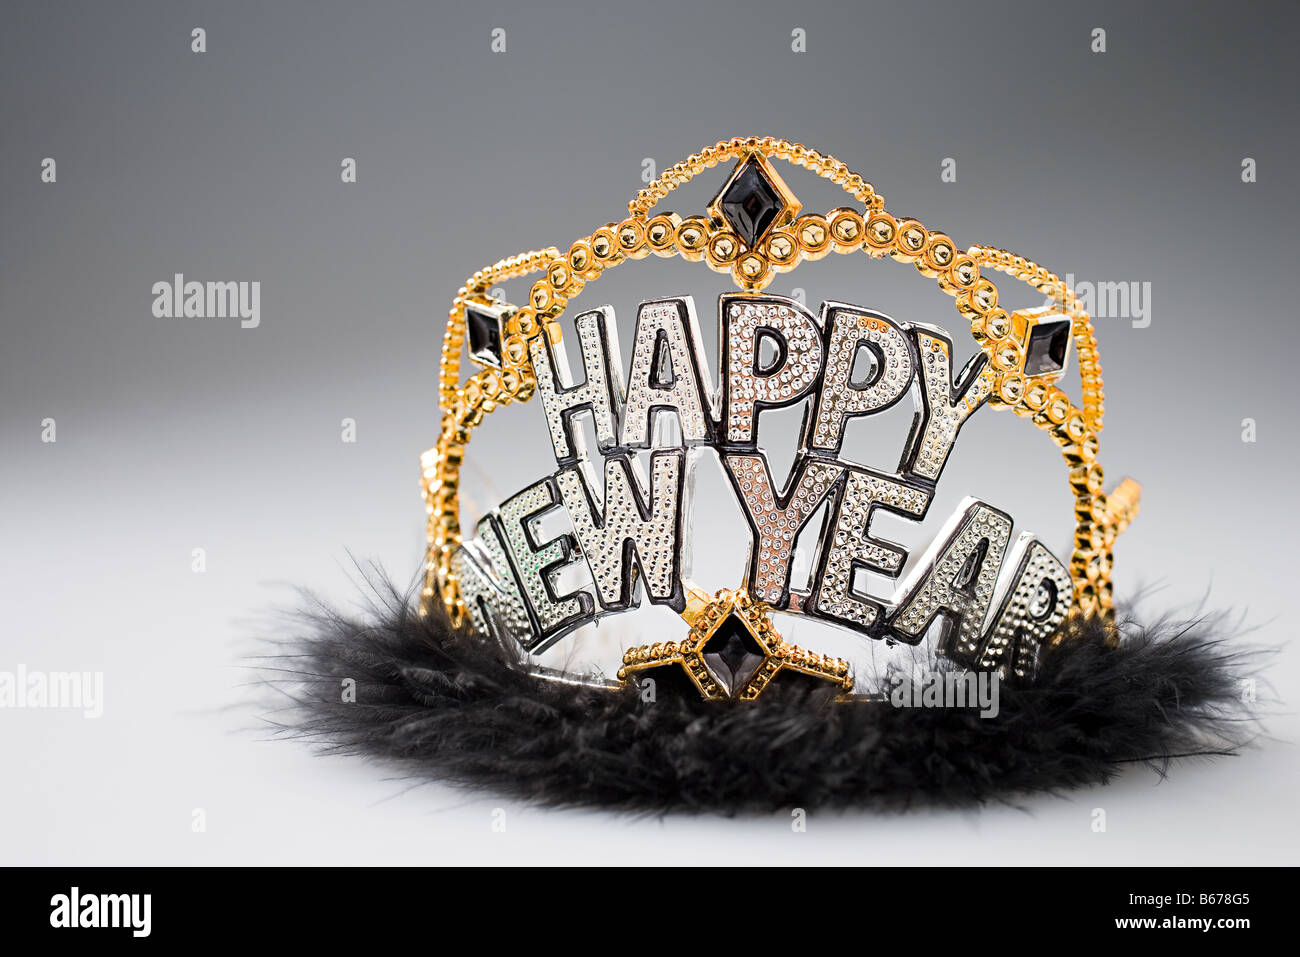 New years eve crown - Stock Image